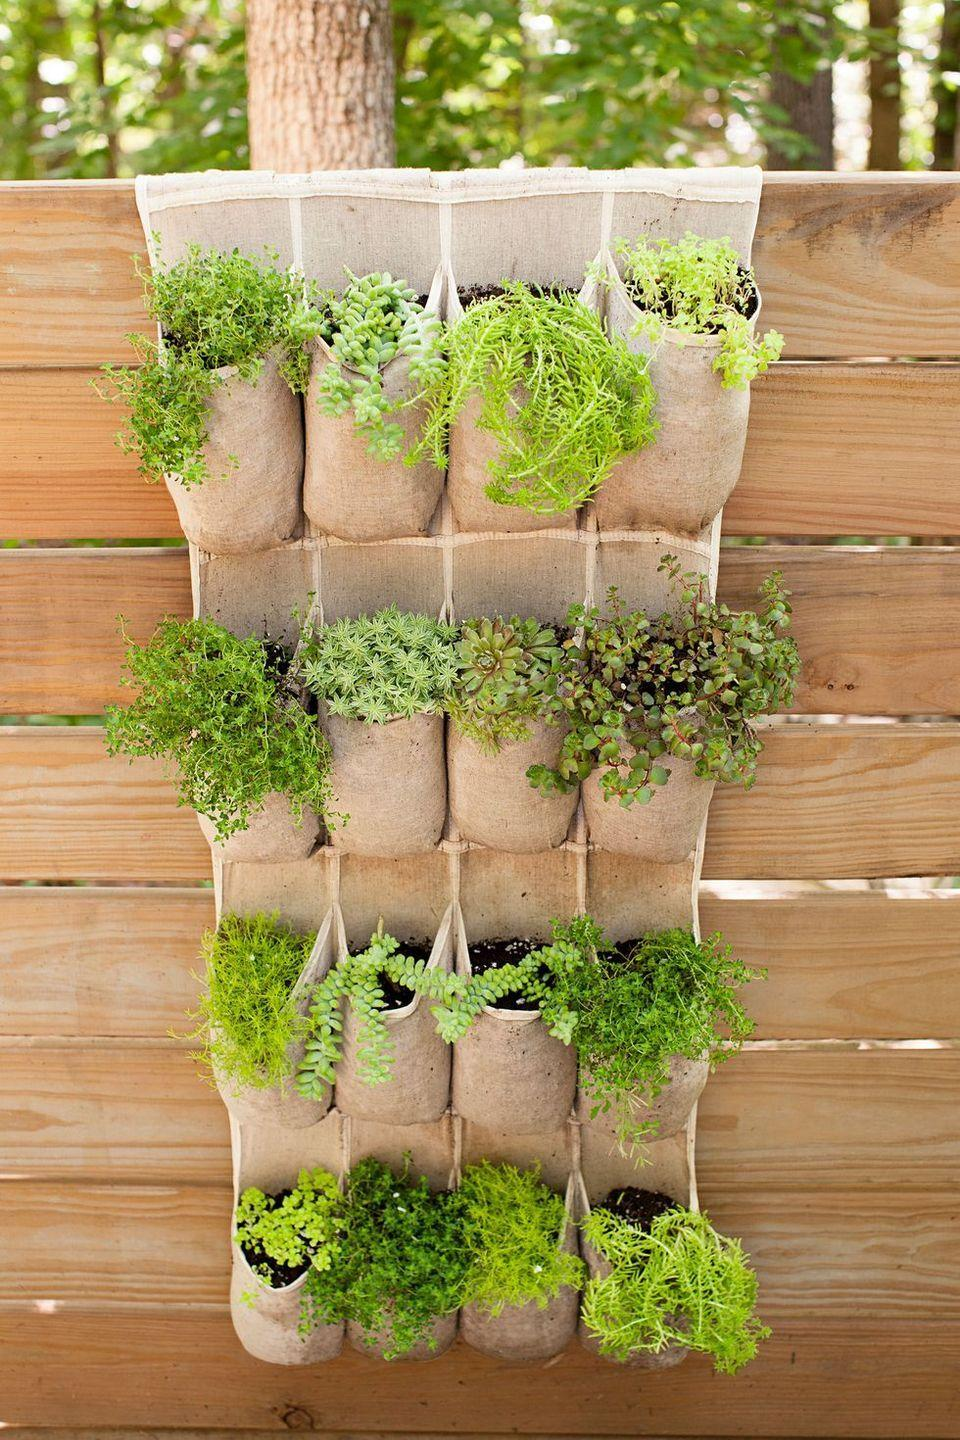 <p>Find an over-the-door shoe organizer that matches your aesthetic (linen works best!) and attach it to your fence for a space-saving herb garden. Stick a different kind of herb in each compartment, and then add labels to help you keep track of what's what.</p>